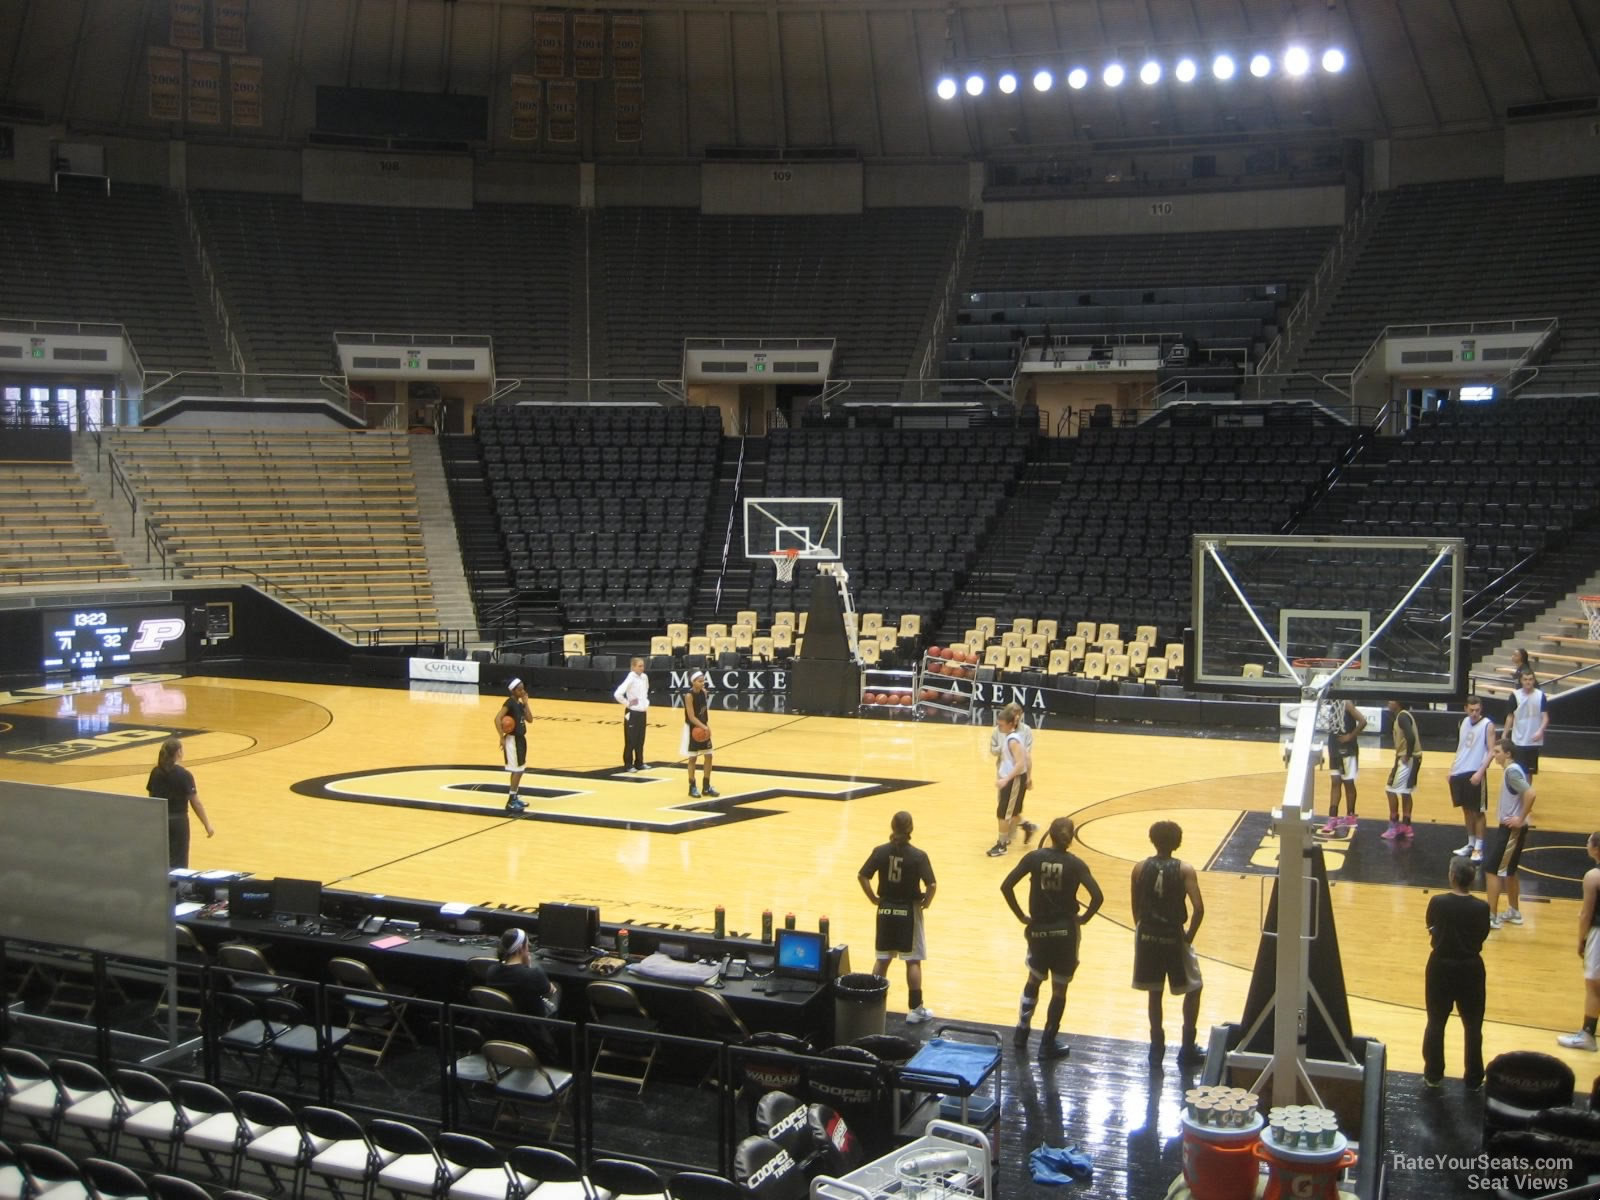 View from Section 17 Row 10 at Mackey Arena